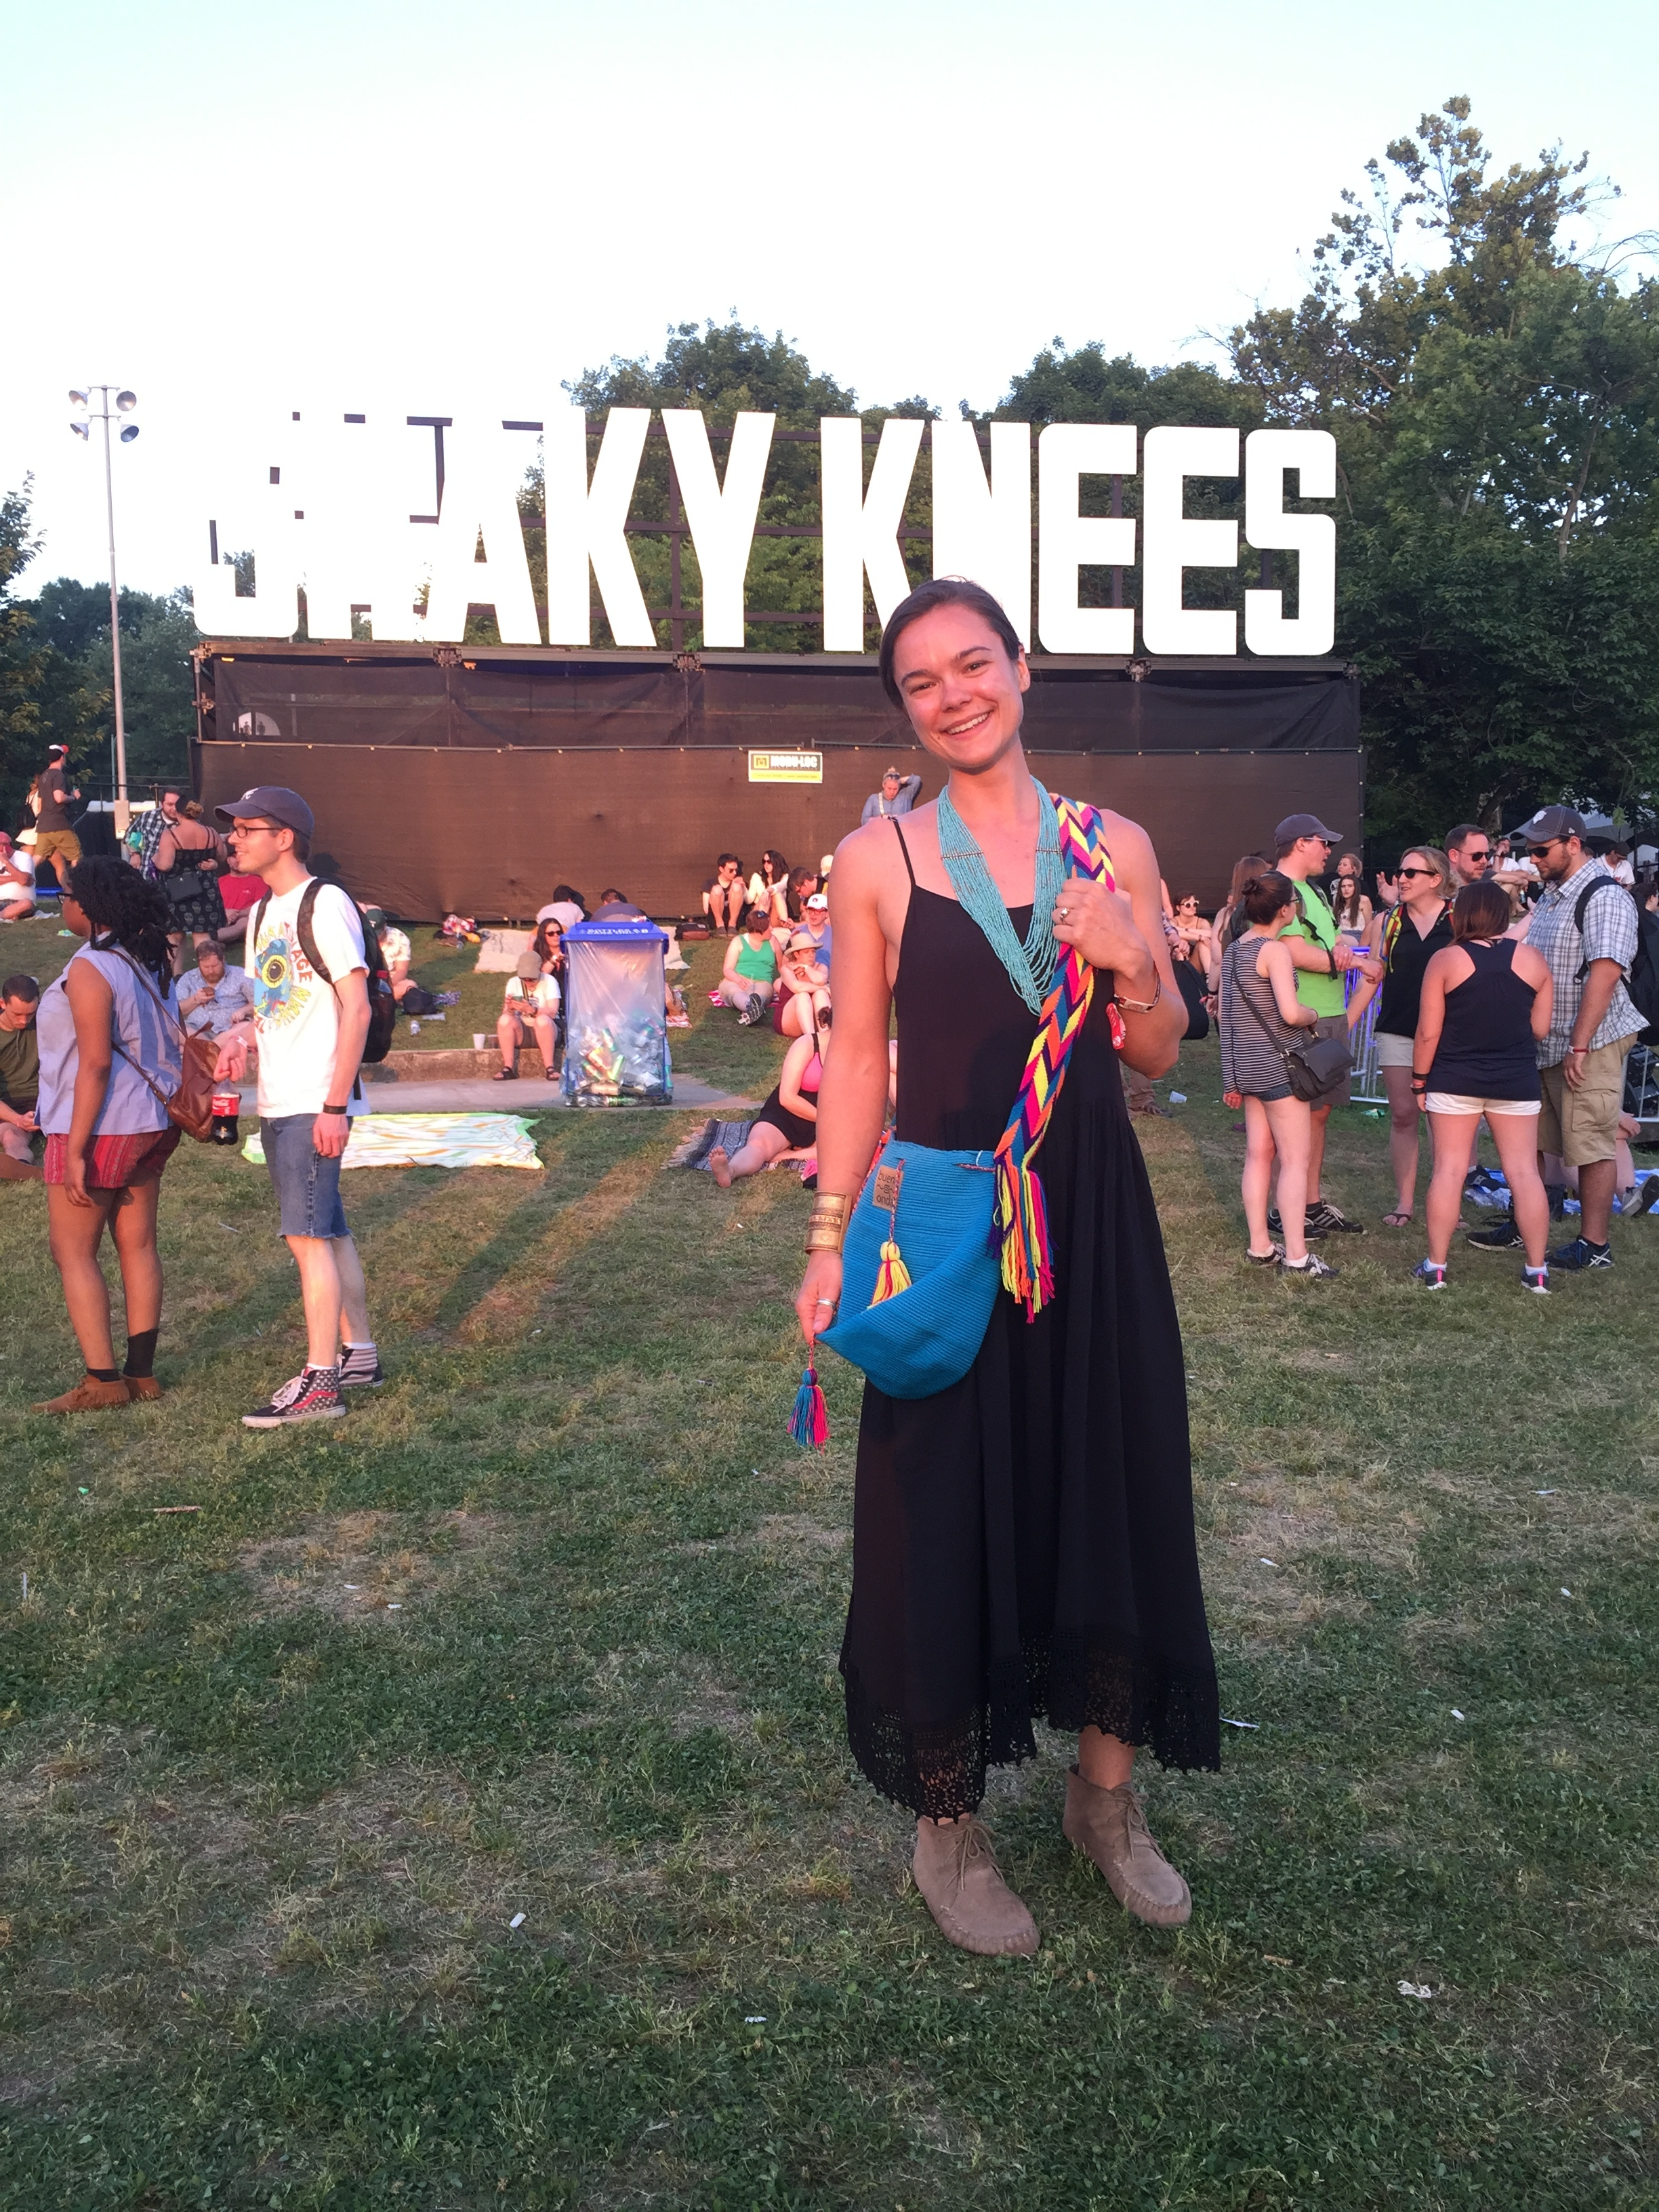 Hannah wins the Shaky Knees Giveaway